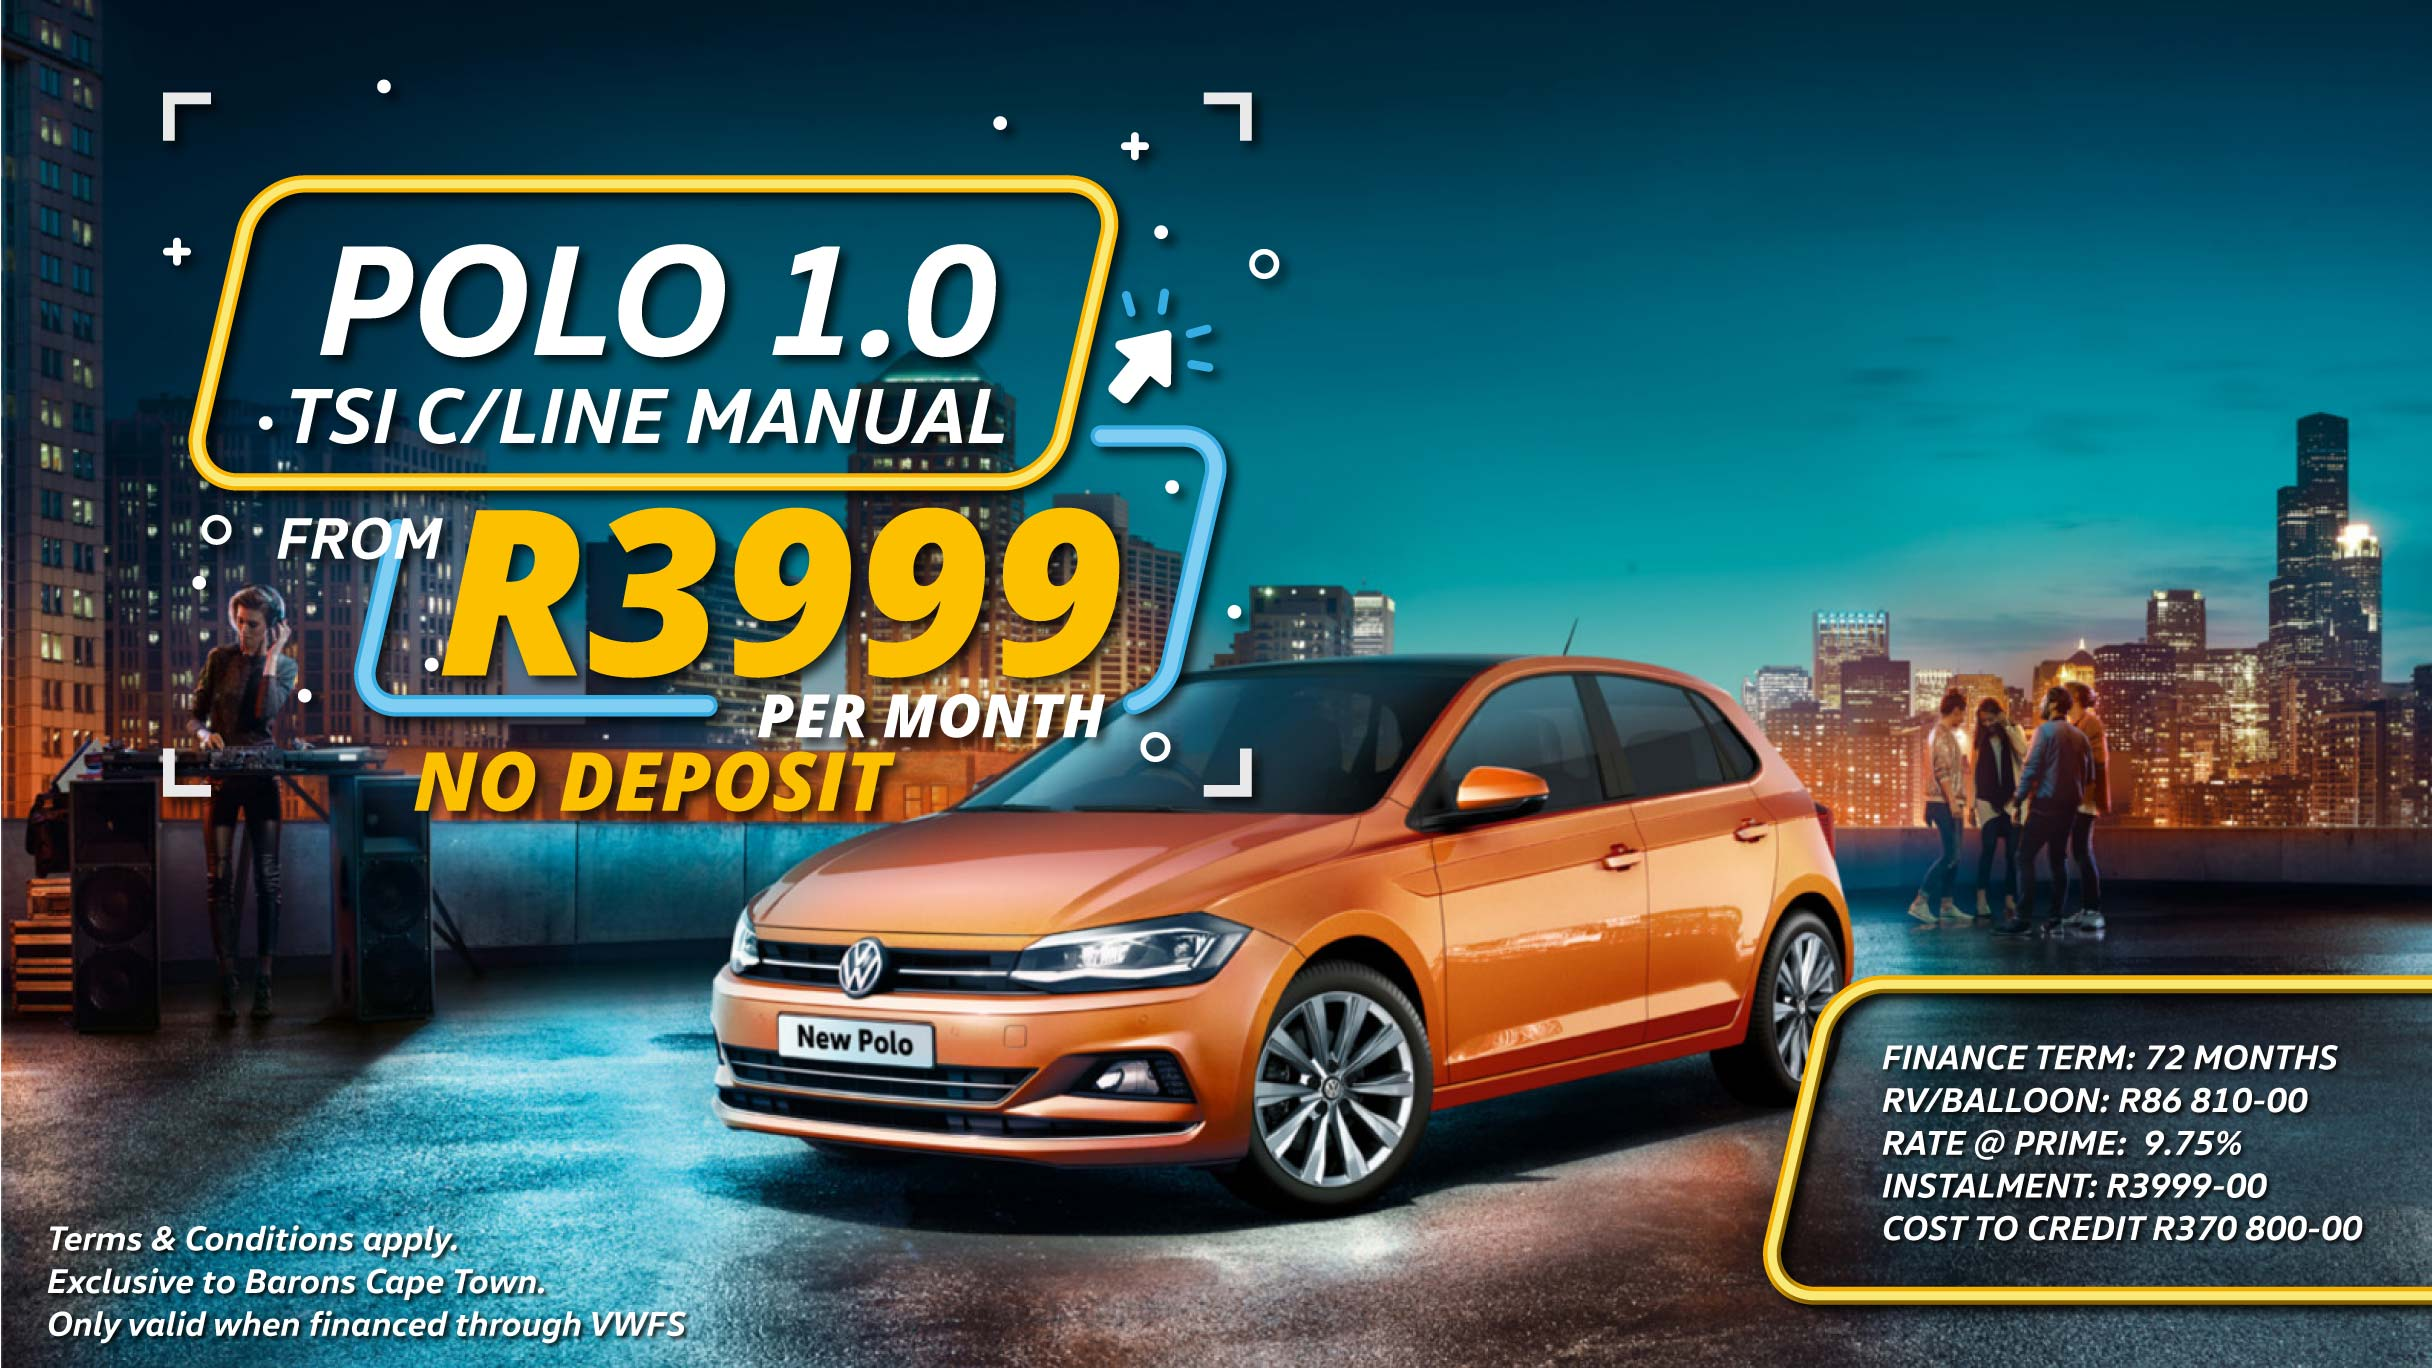 VW Polo offer at Barons Cape Town